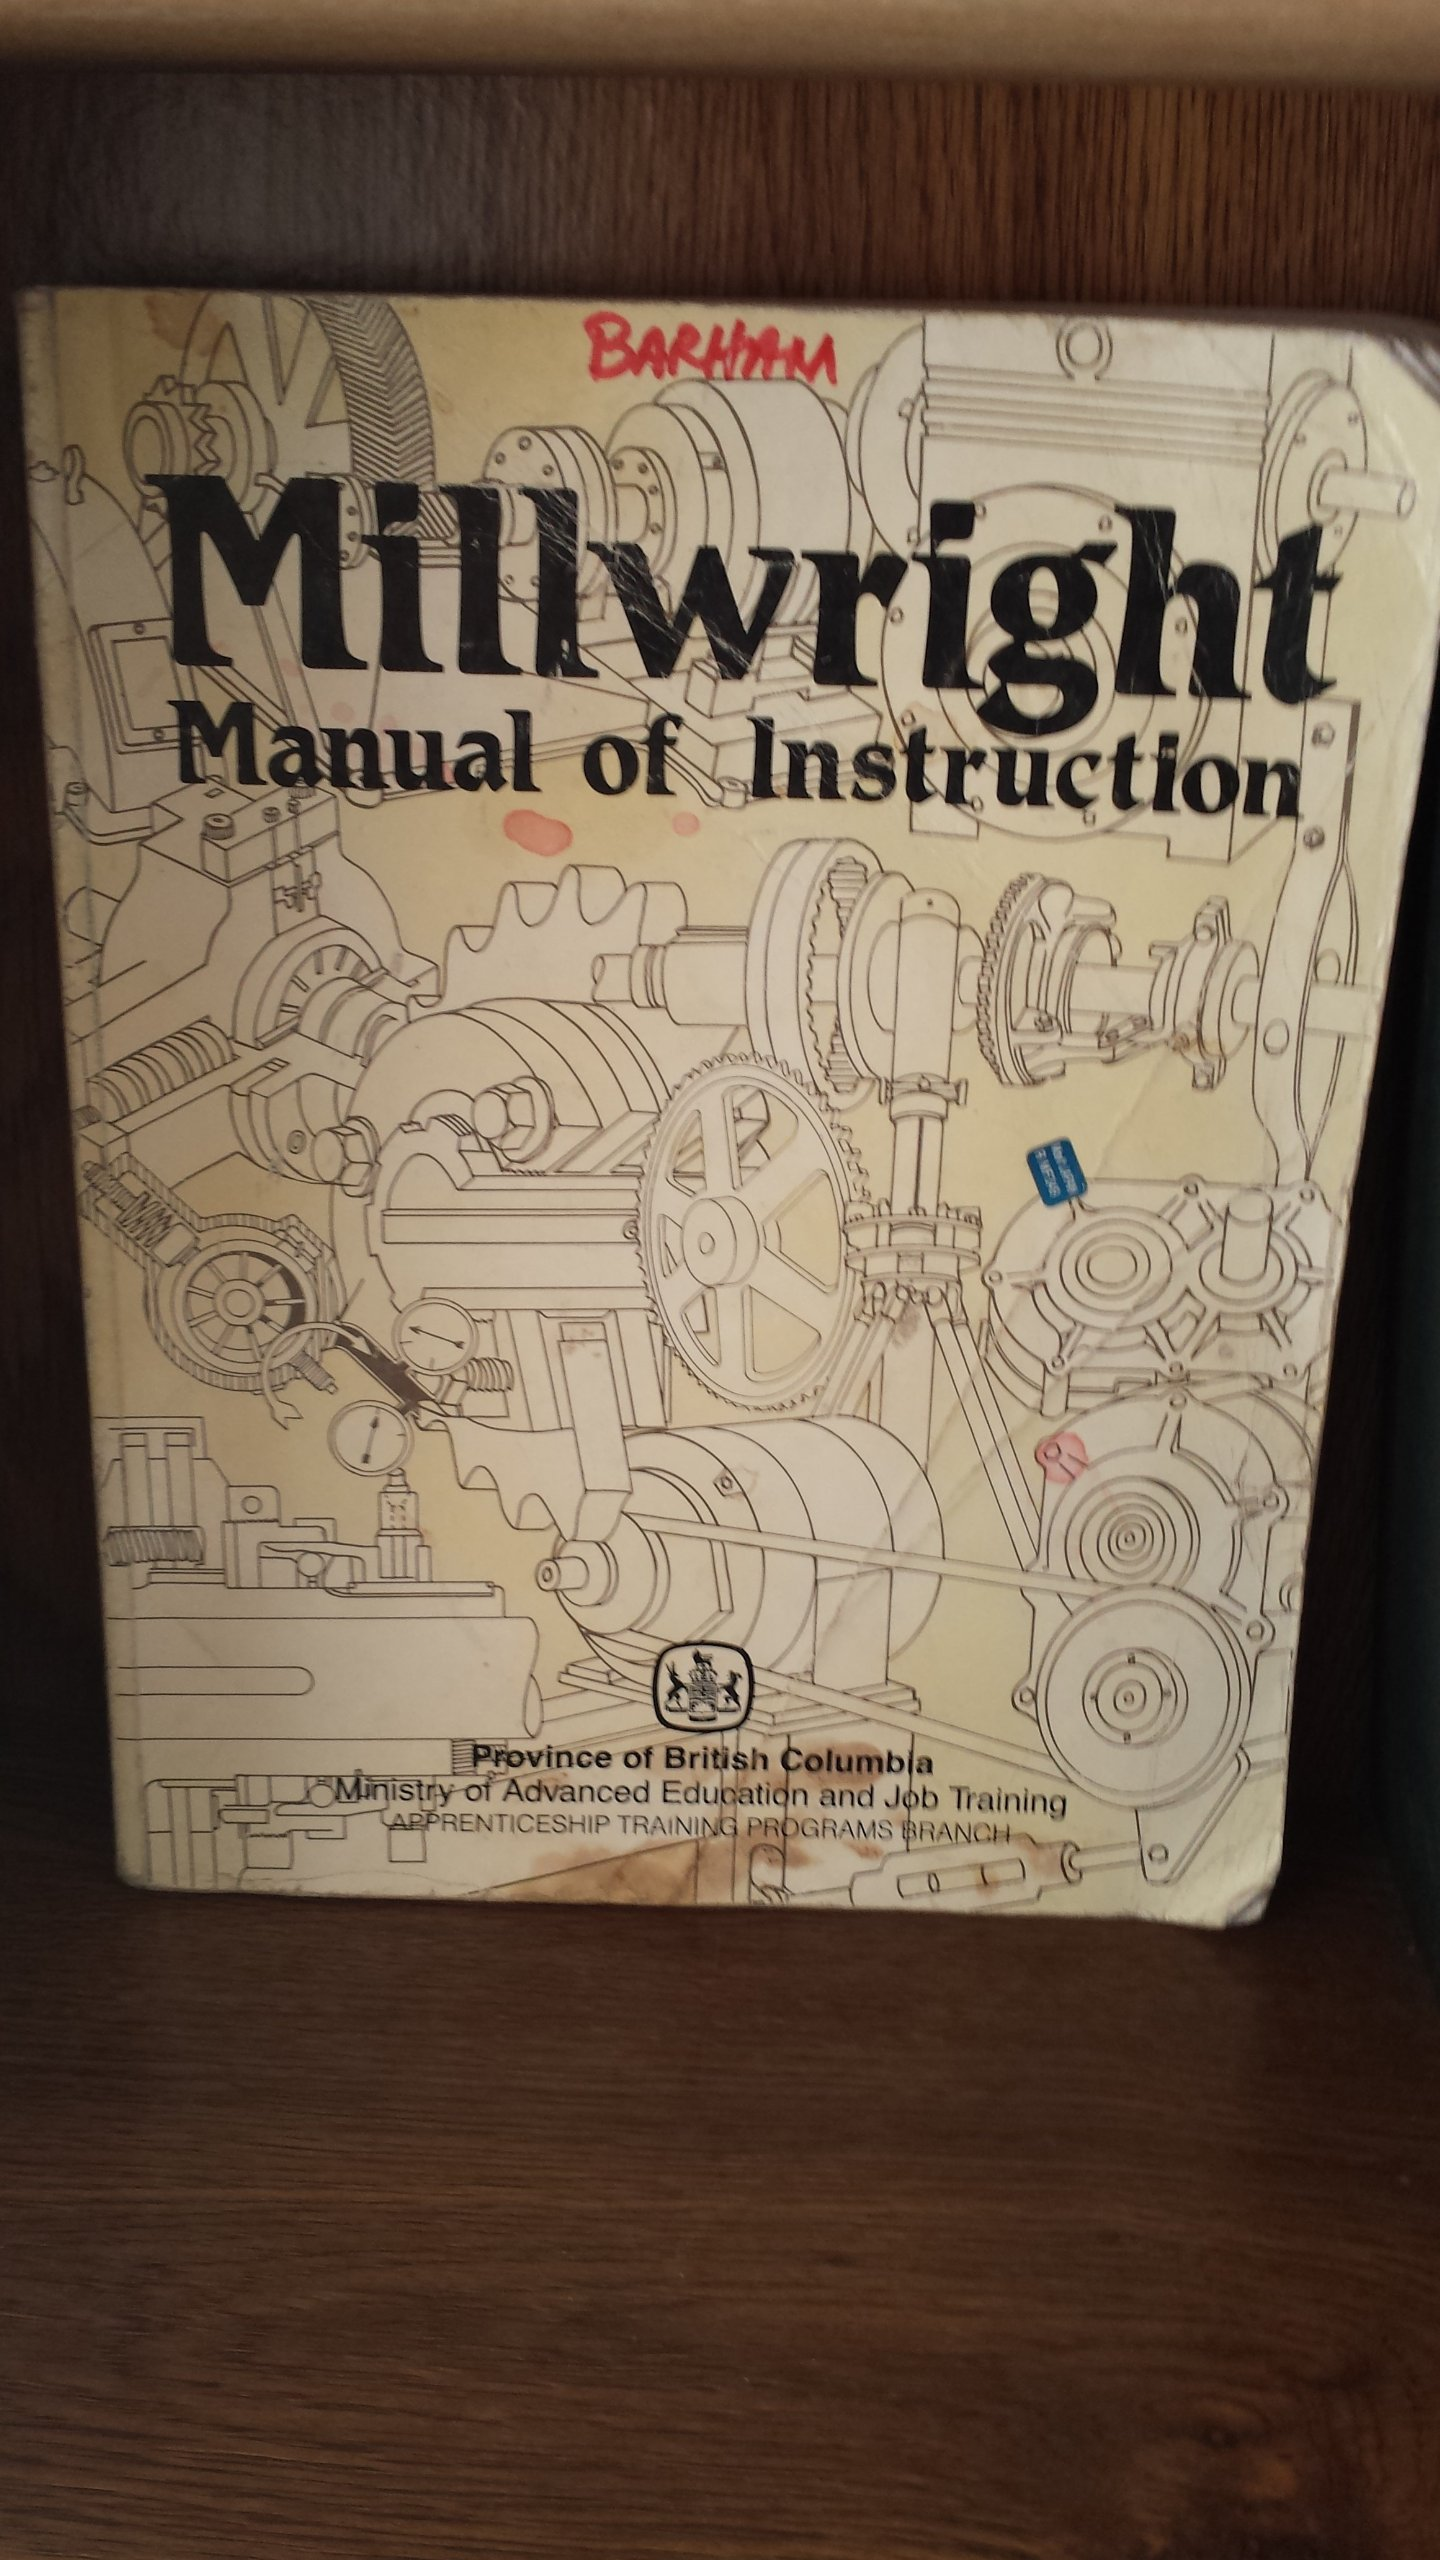 millwright manual of instruction n a 9780771983832 books amazon ca rh amazon ca  bc millwright manual of instruction